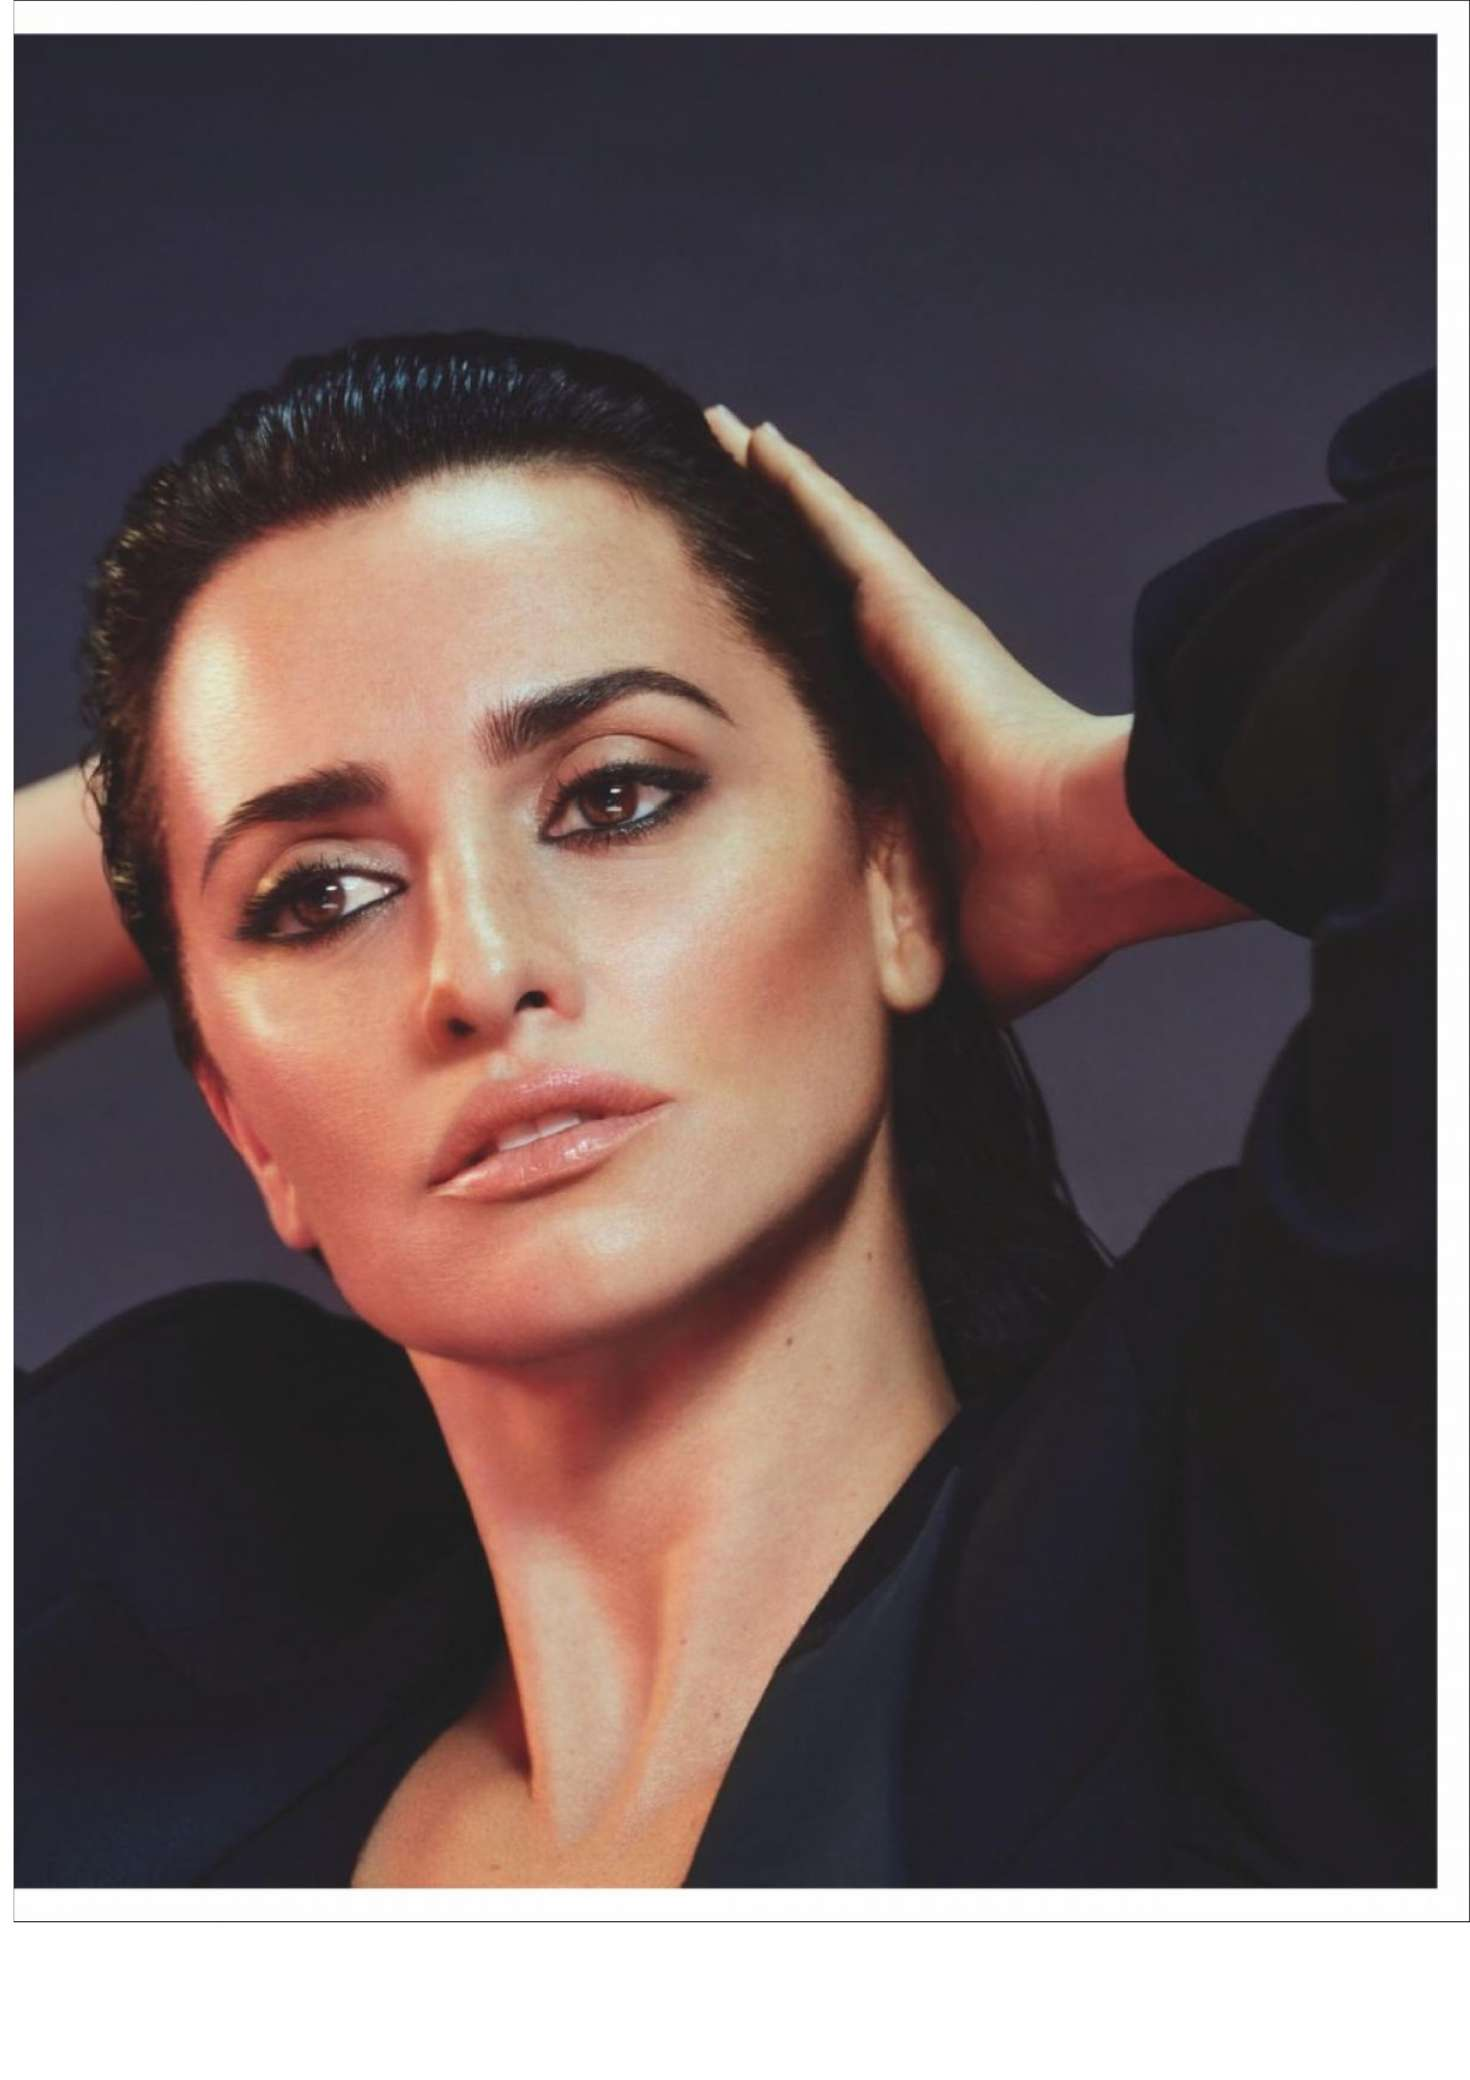 Pen-lope-Cruz-for-InStyle-Spain-February-2018-penelope-cruz-41032566-1470-2080.jpg